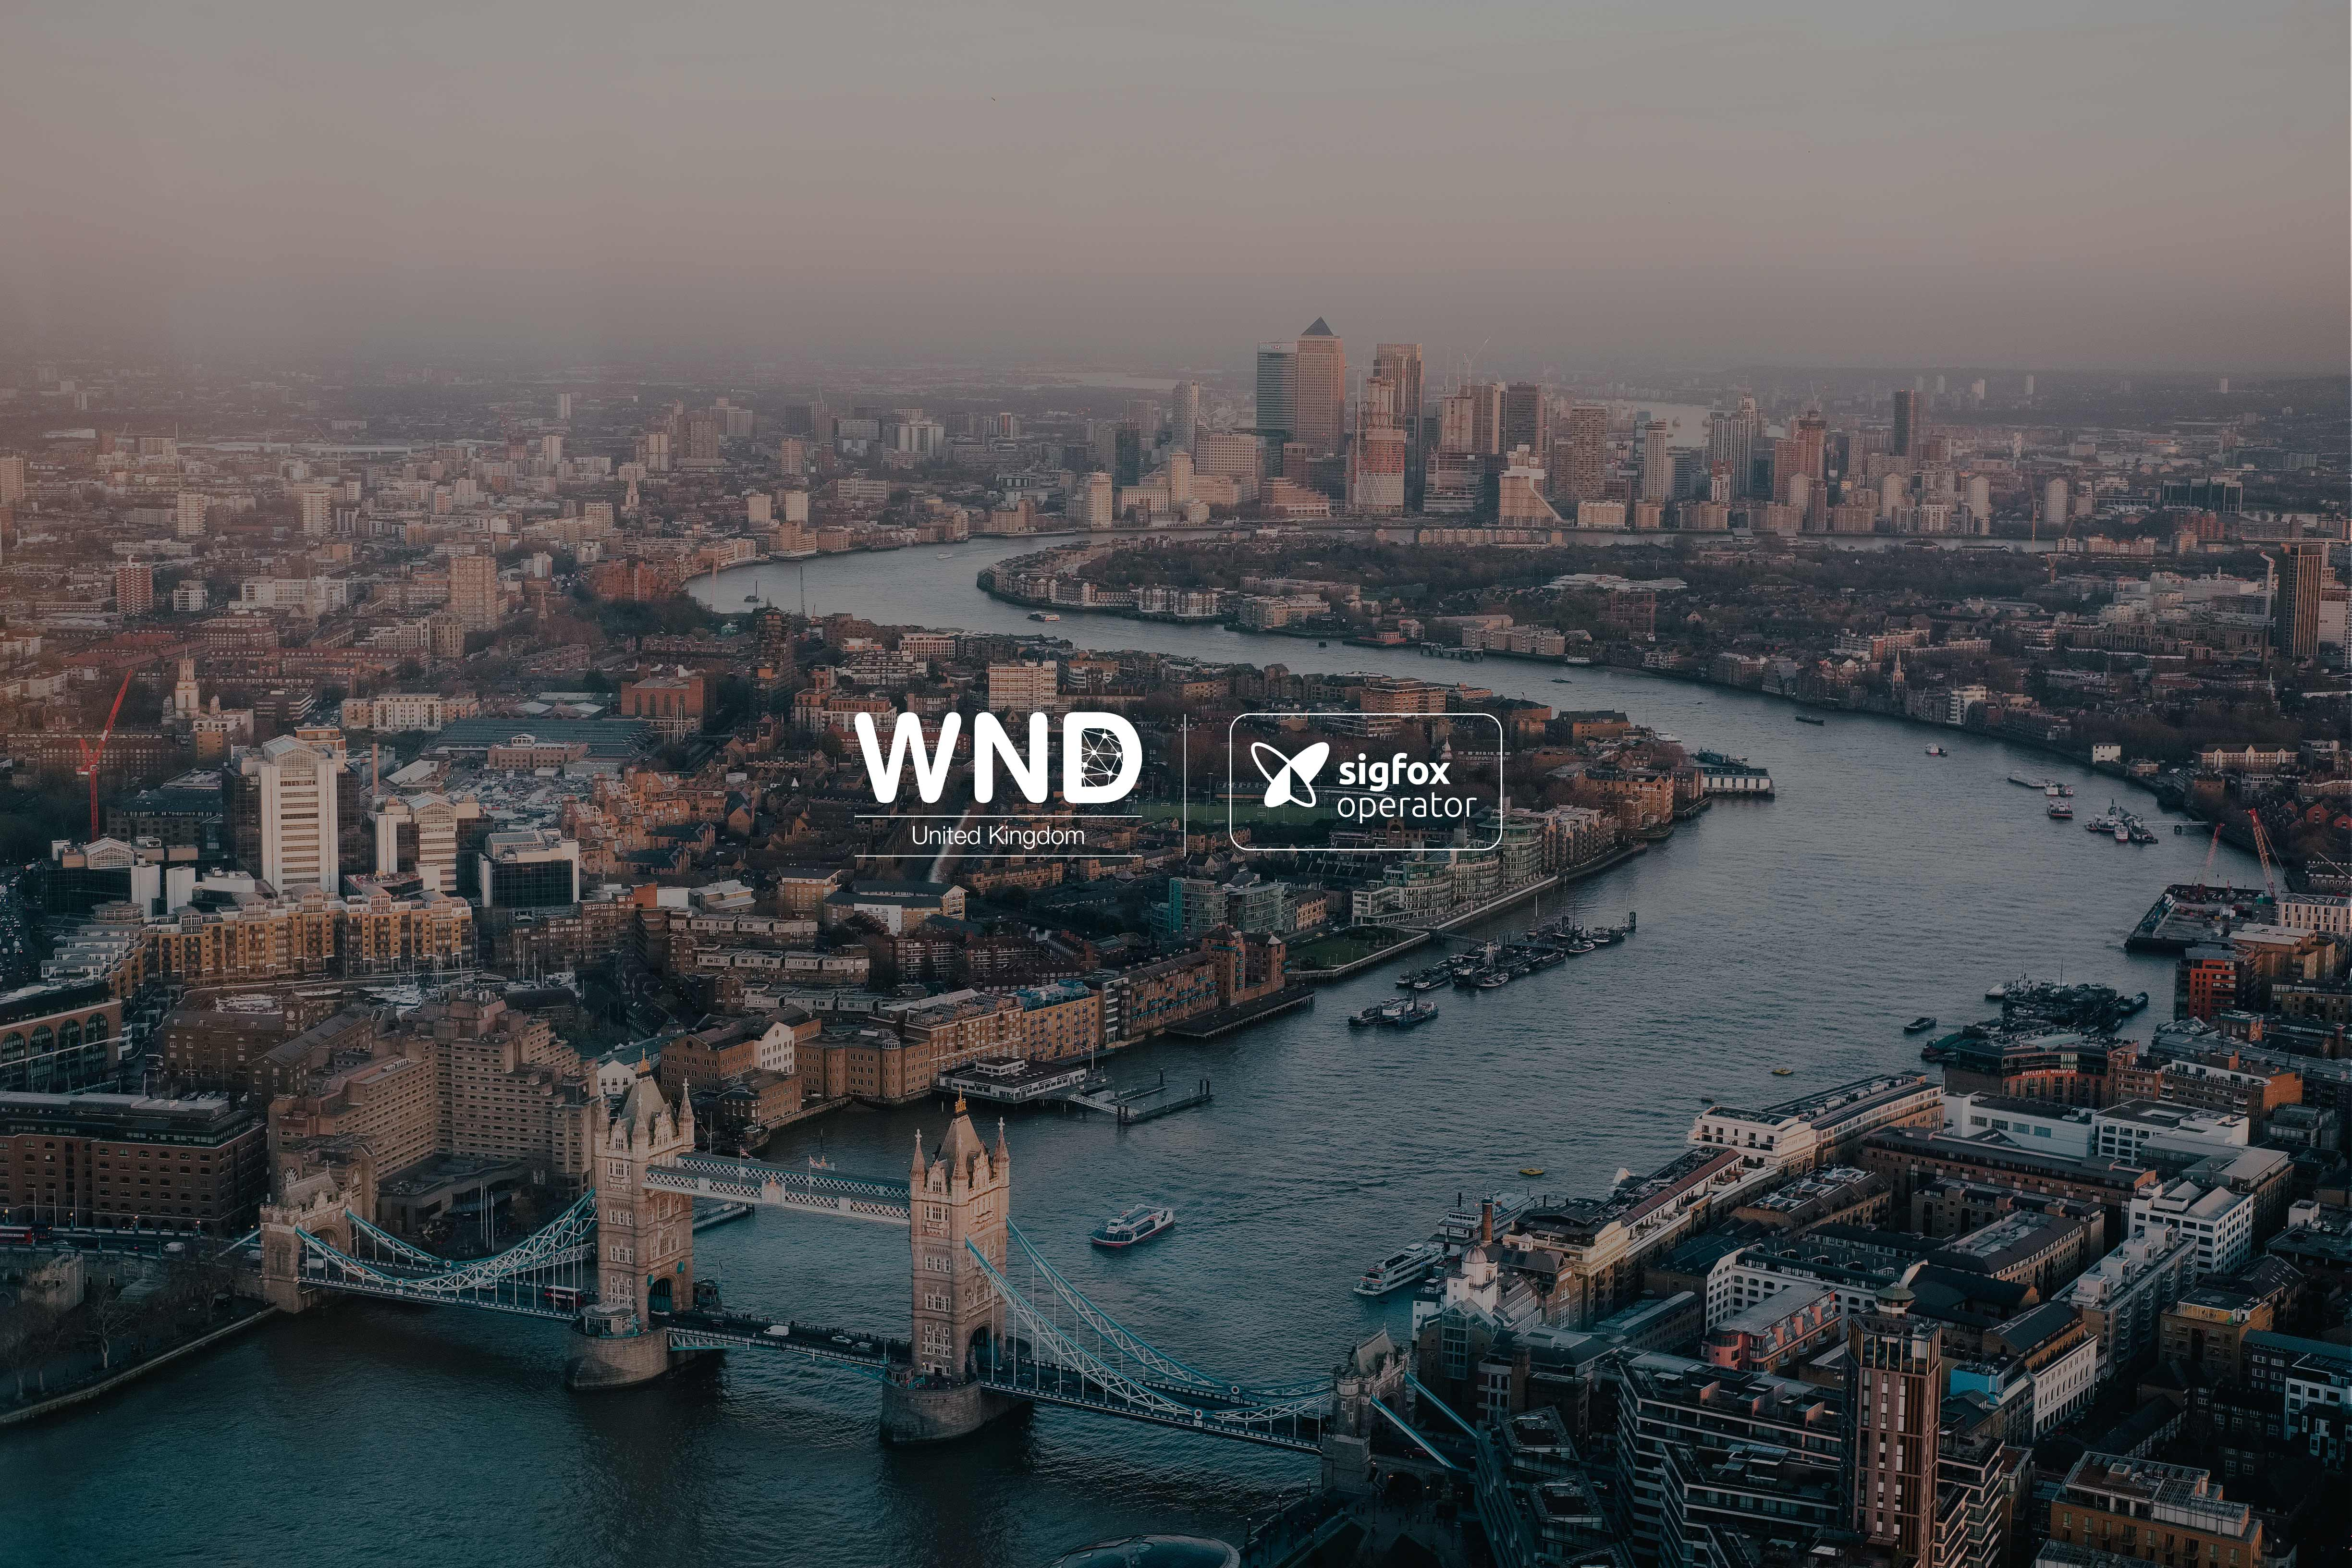 WNDUK, Sigfox network operator for the UK  announces 1,000 base station installs covering more than 50 million people